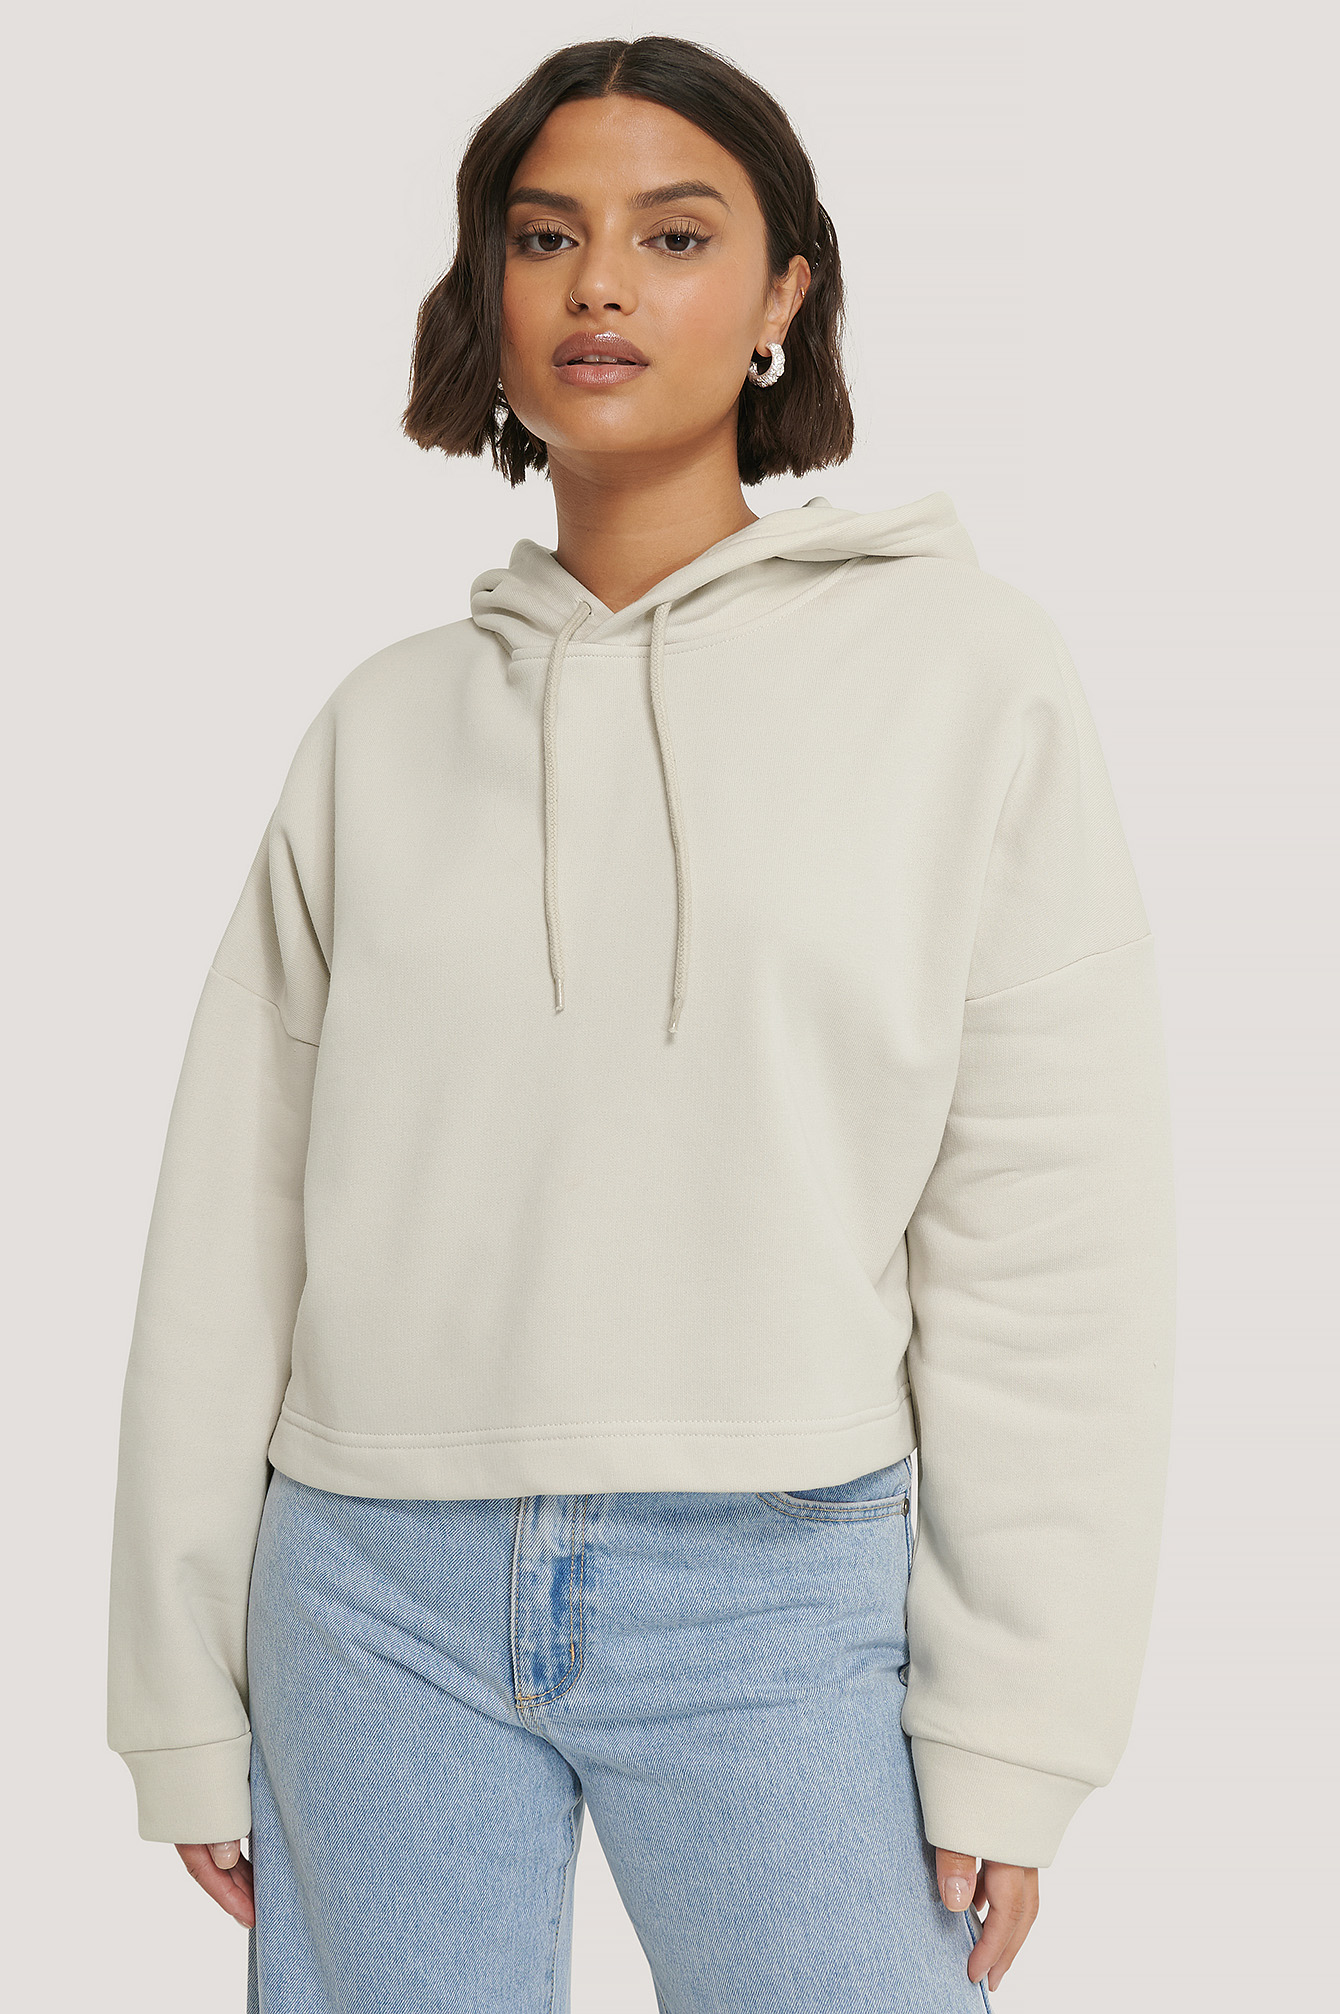 Dusty Light Beige Organic Basic Cropped Hoodie